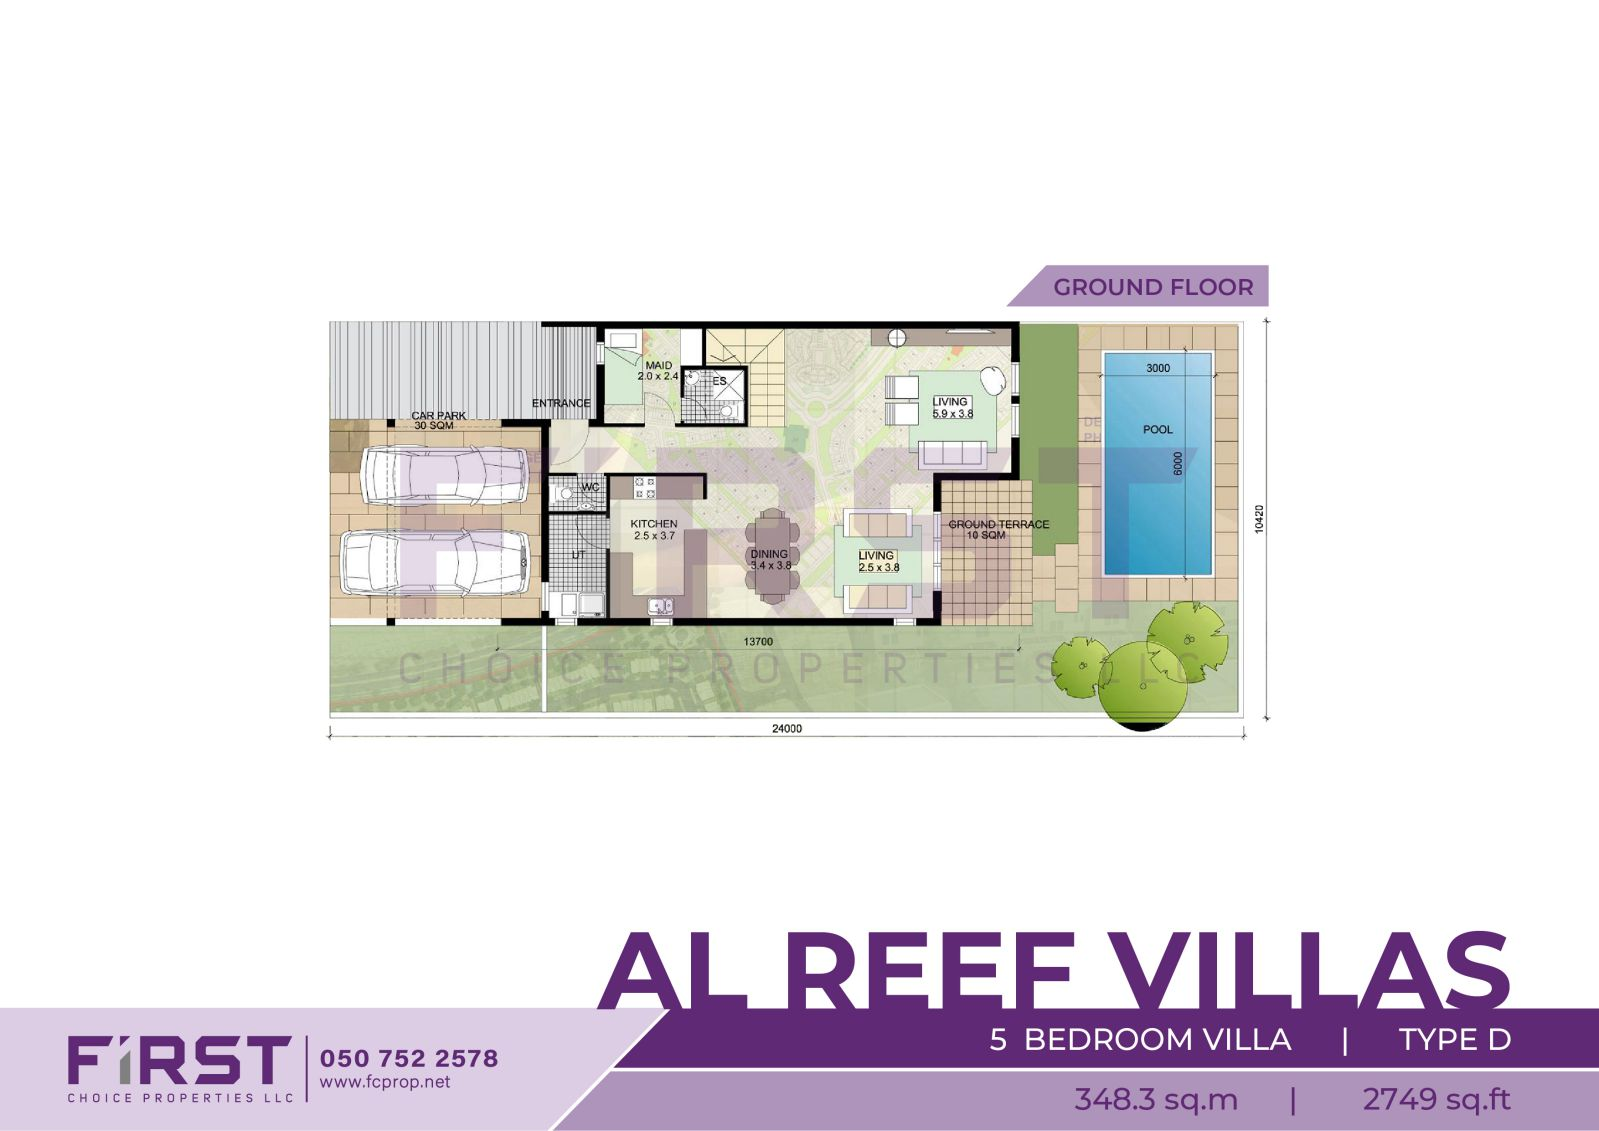 Floor Plan of 5 Bedroom Villa Type D in Al Reef Villas Al Reef Abu Dhabi Abu Dhabi UAE 348.3 sq.m 3749 sq.ft 2.jpg